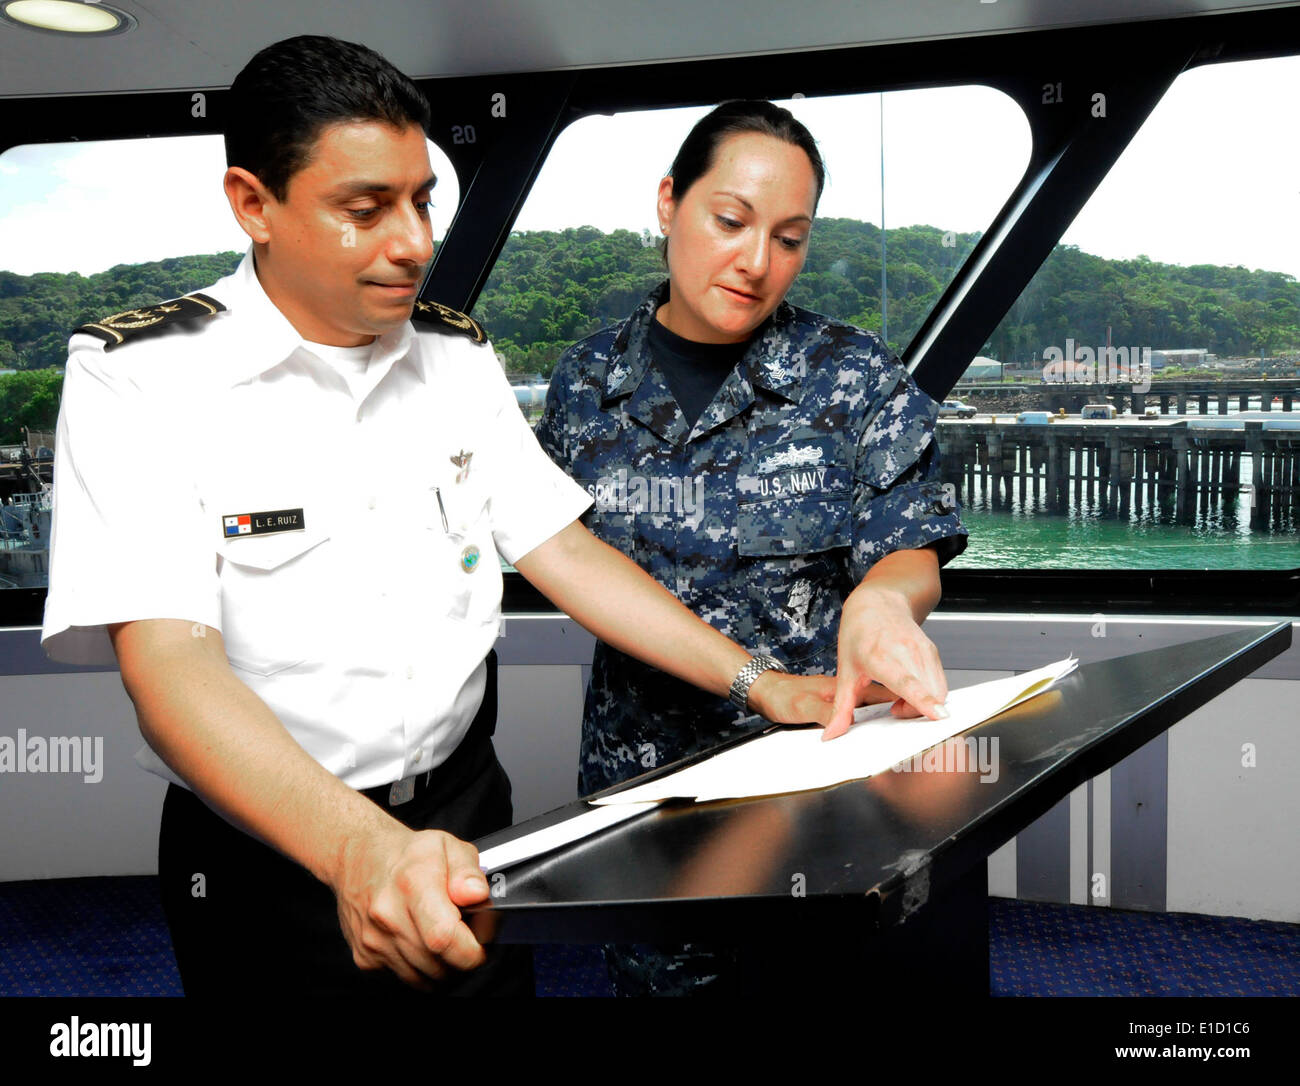 U.S. Navy Yeoman 1st Class Ursula Wilson, right, interprets a portion of a speech given by Panamanian Aeronaval Col. L.E. Ruiz - Stock Image